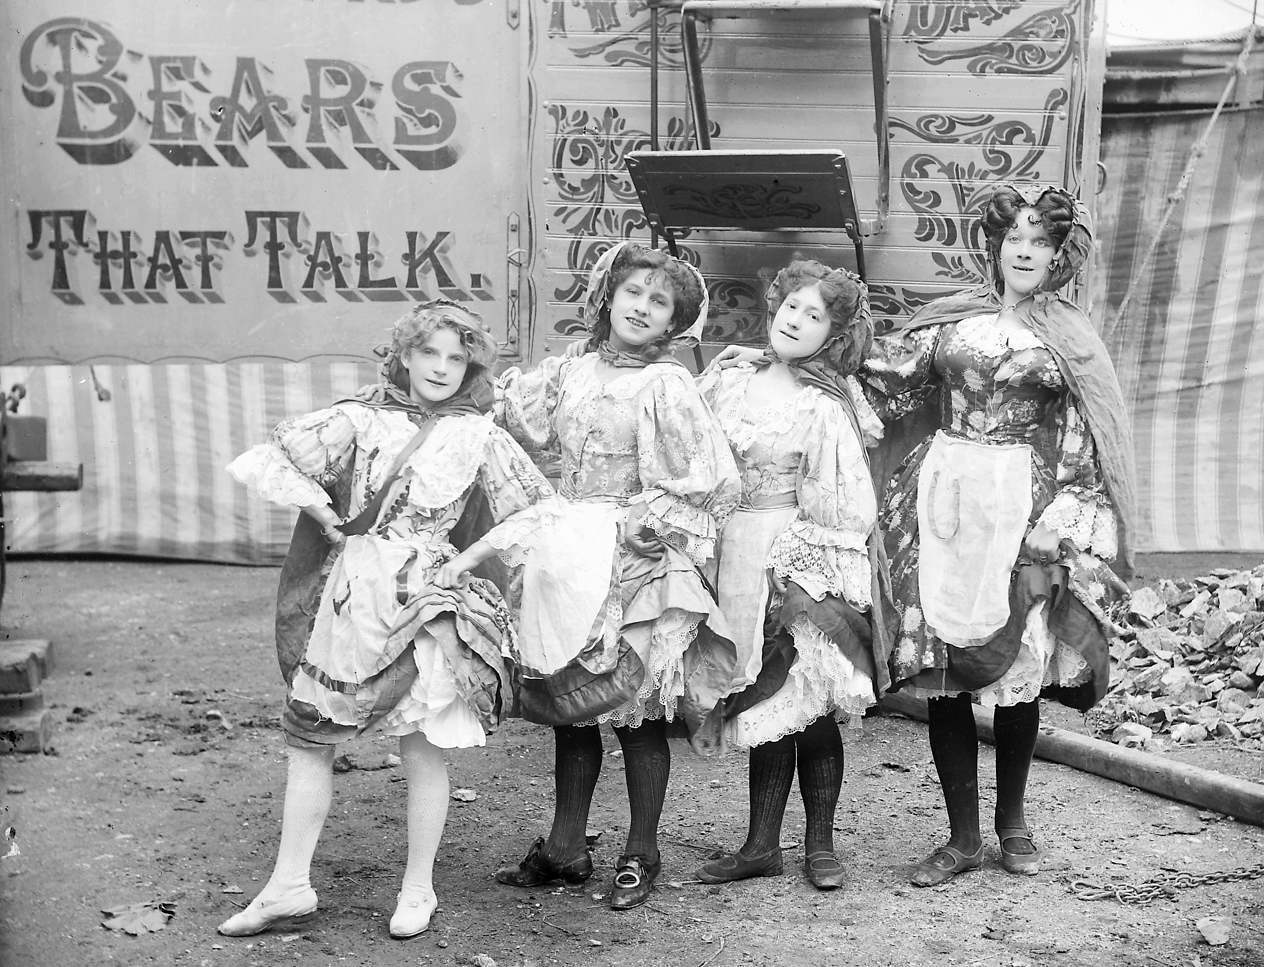 Hanneford's Canadian Circus, four girl circus performers c1910